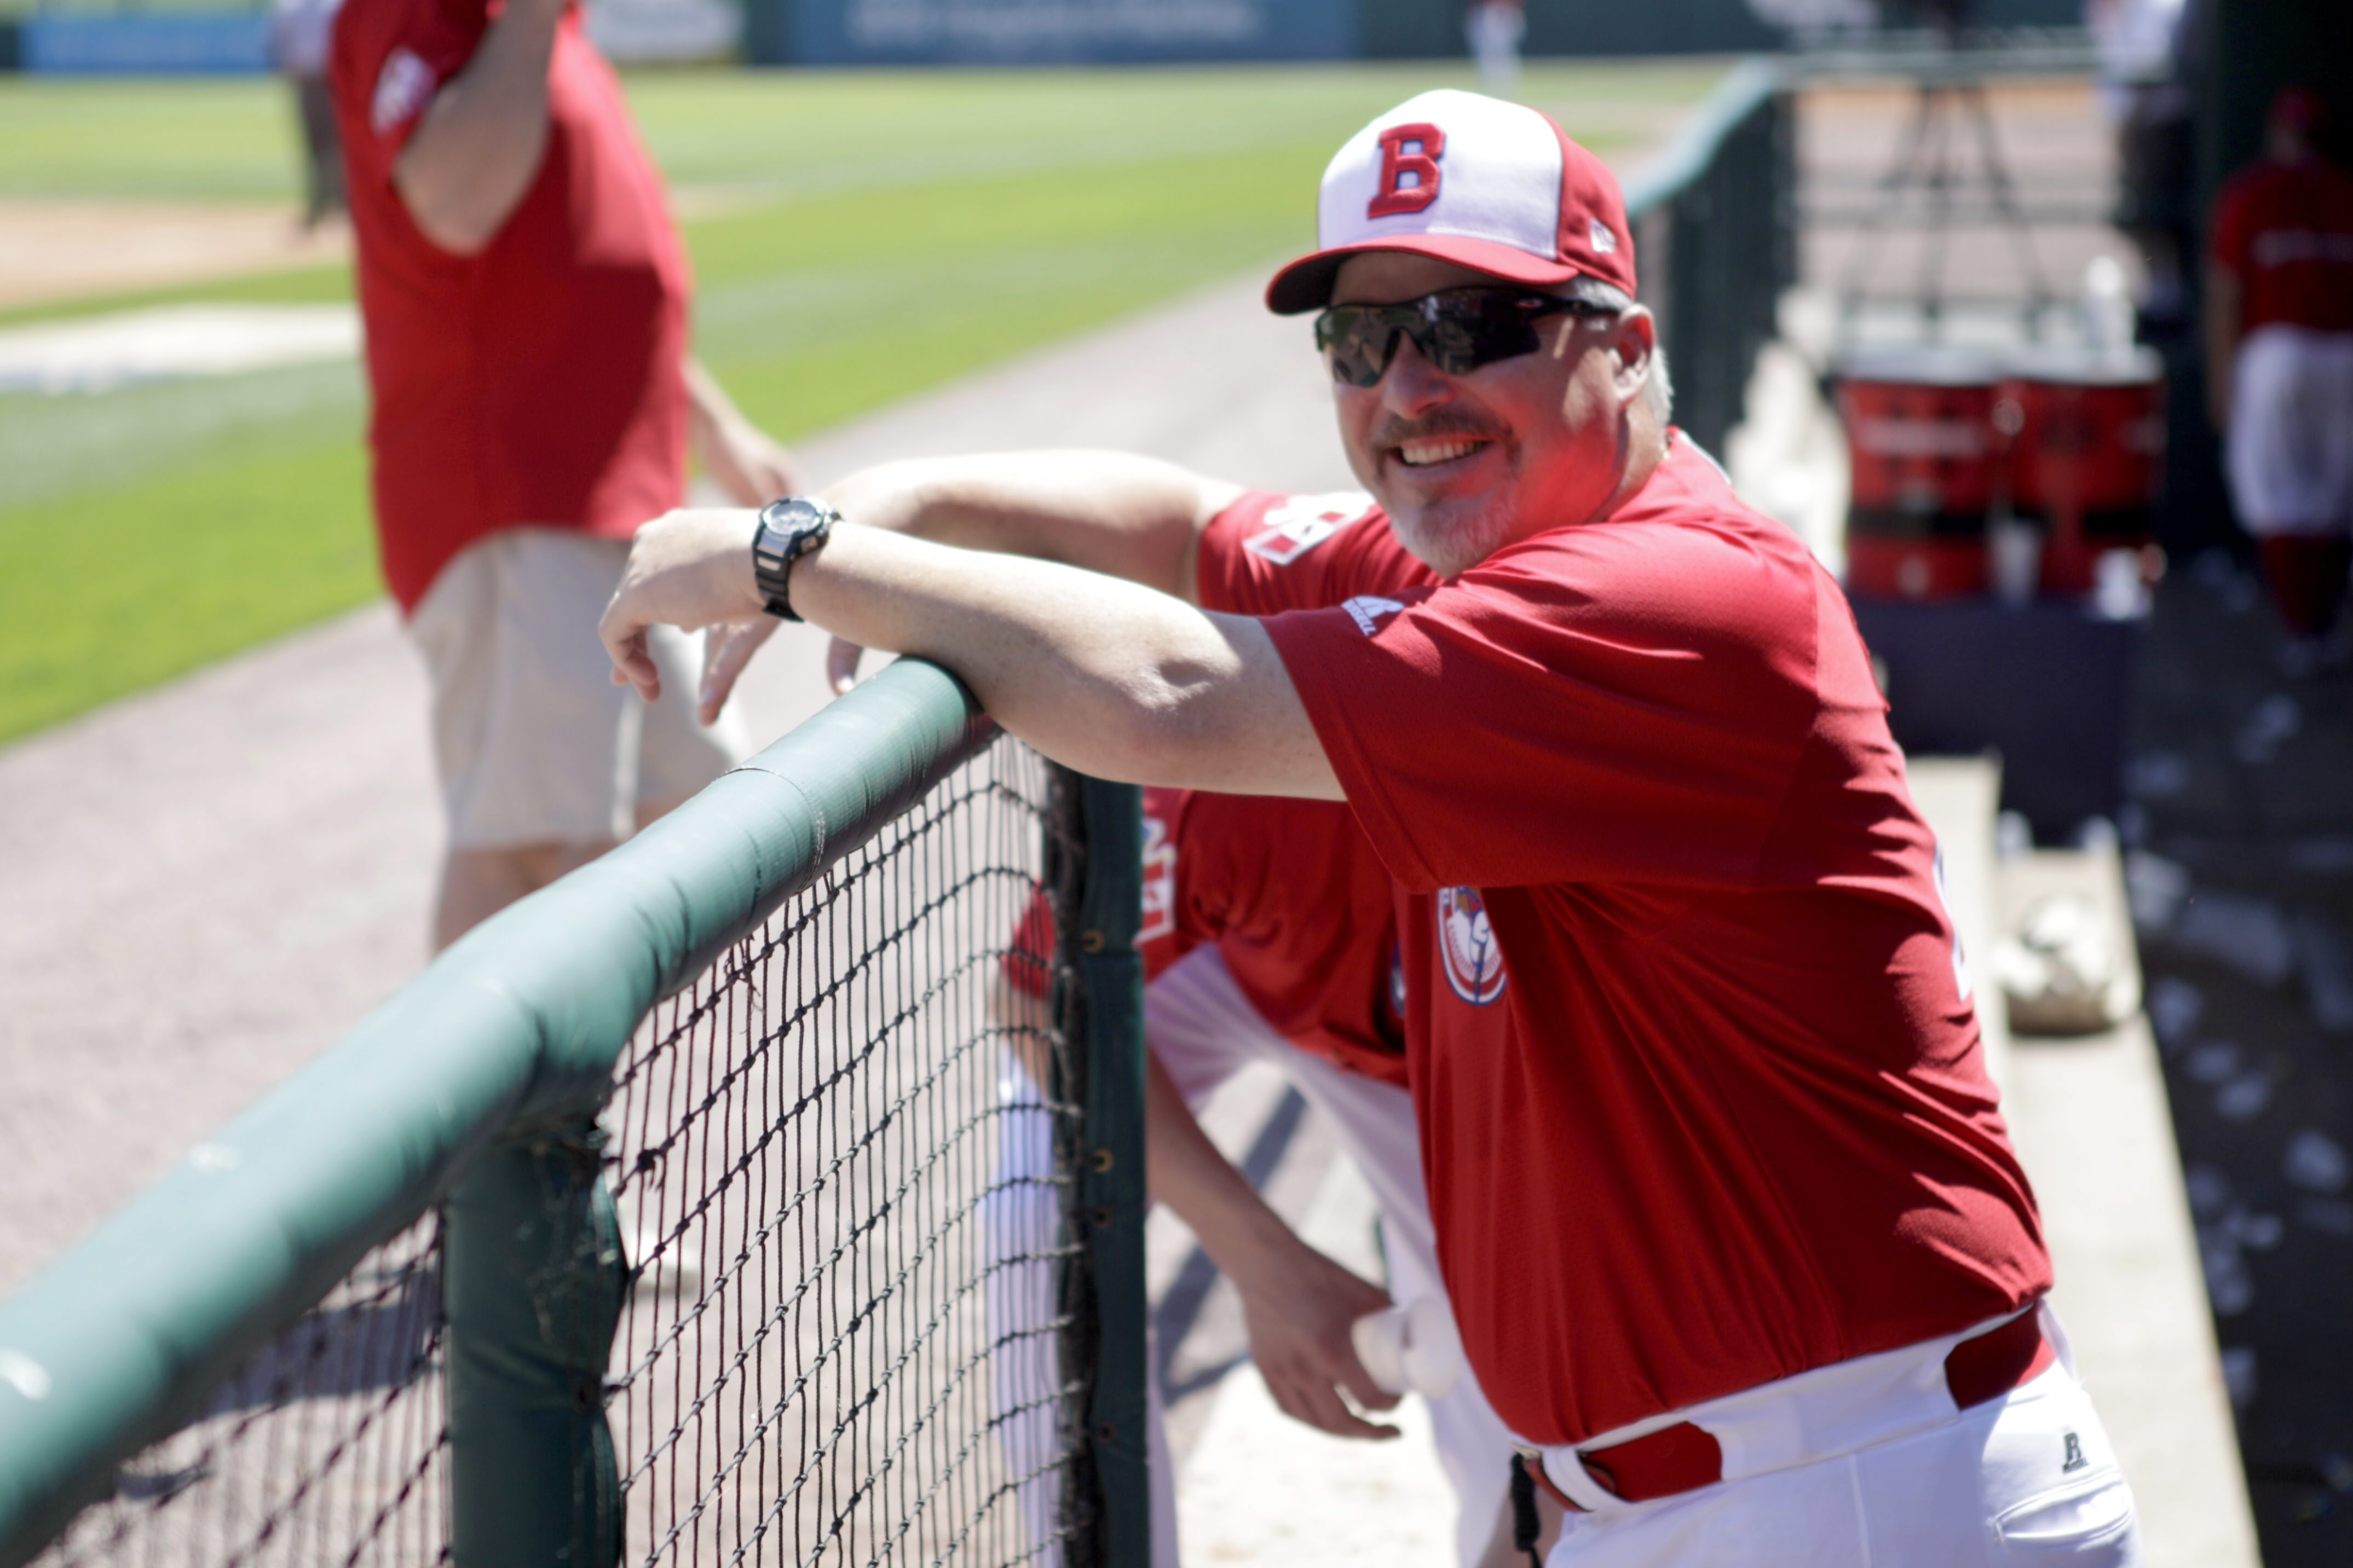 The Bisons went 74-70 under manager Marty Brown in 2013.